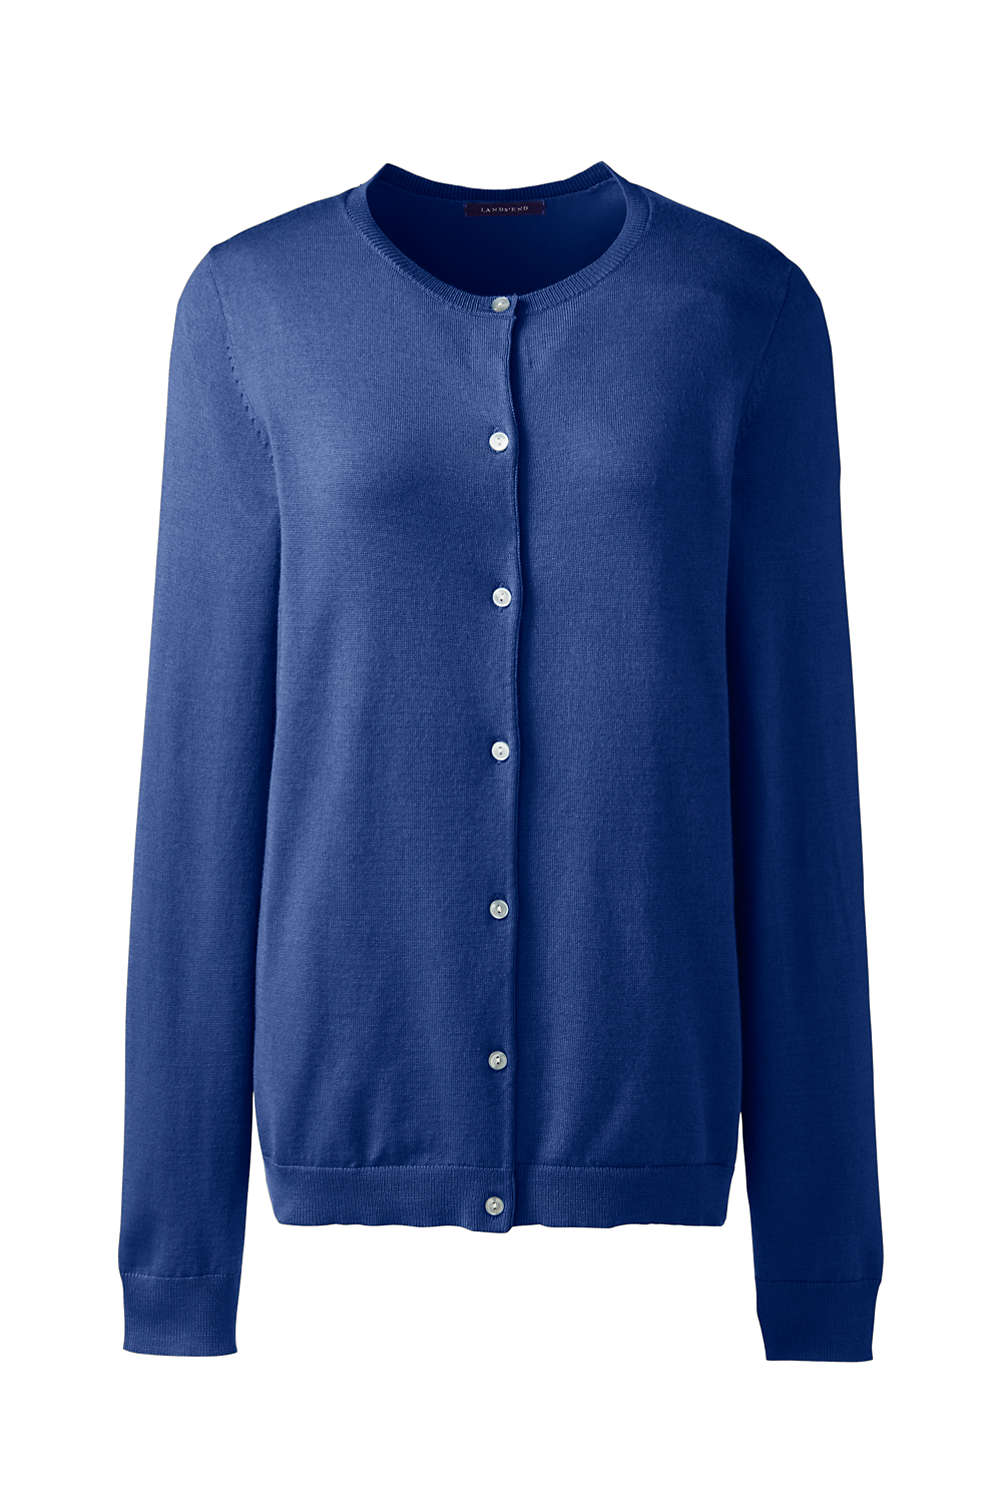 9bd1651fd5 Women s Performance Crew Cardigan Sweater from Lands  End